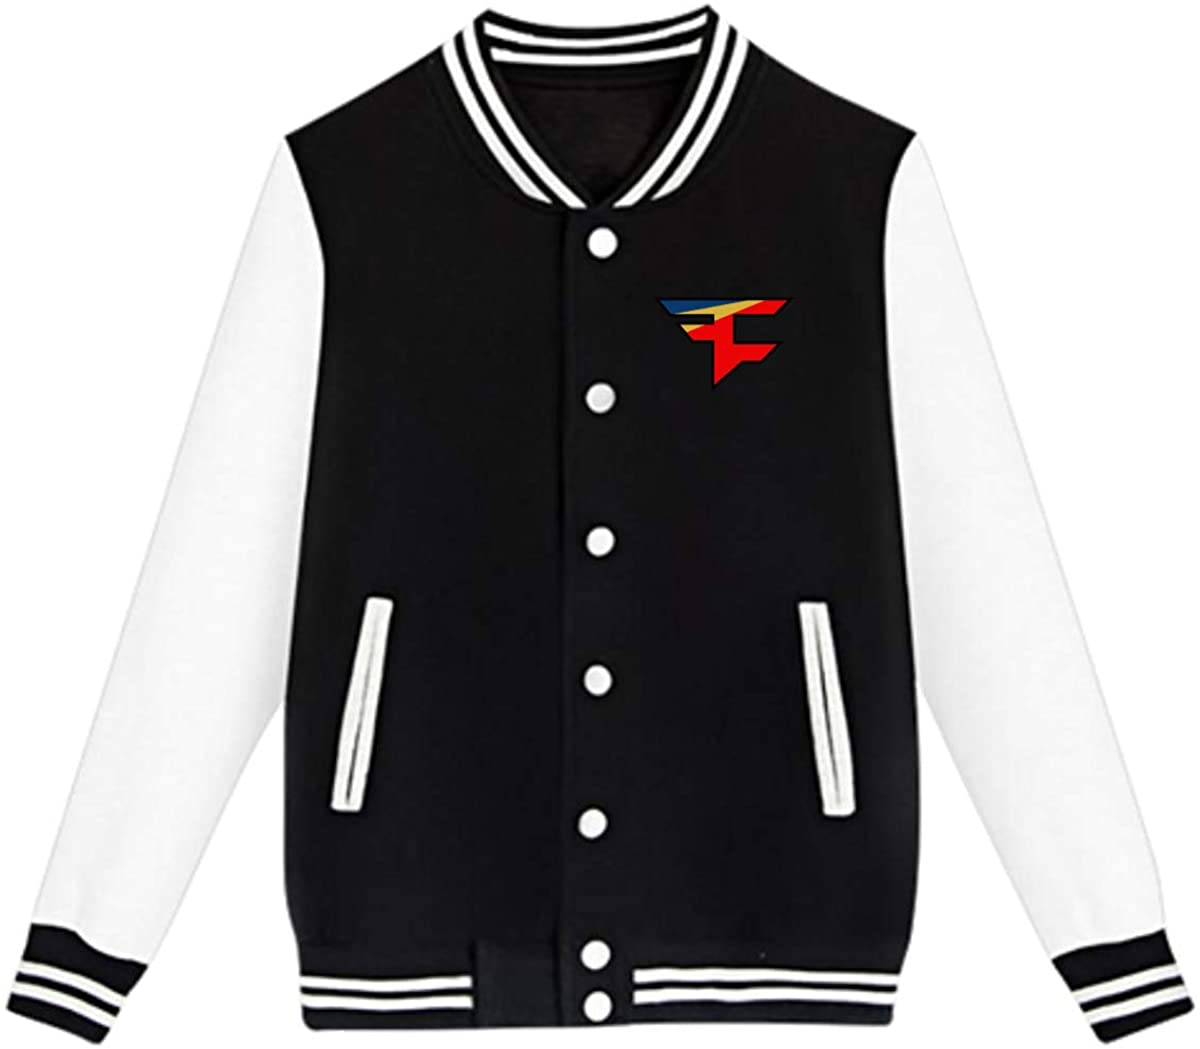 Faze Clan Team Logo Unisex Youth Boys and Girls Sweatshirt Baseball Uniform Jacket Sport Coat